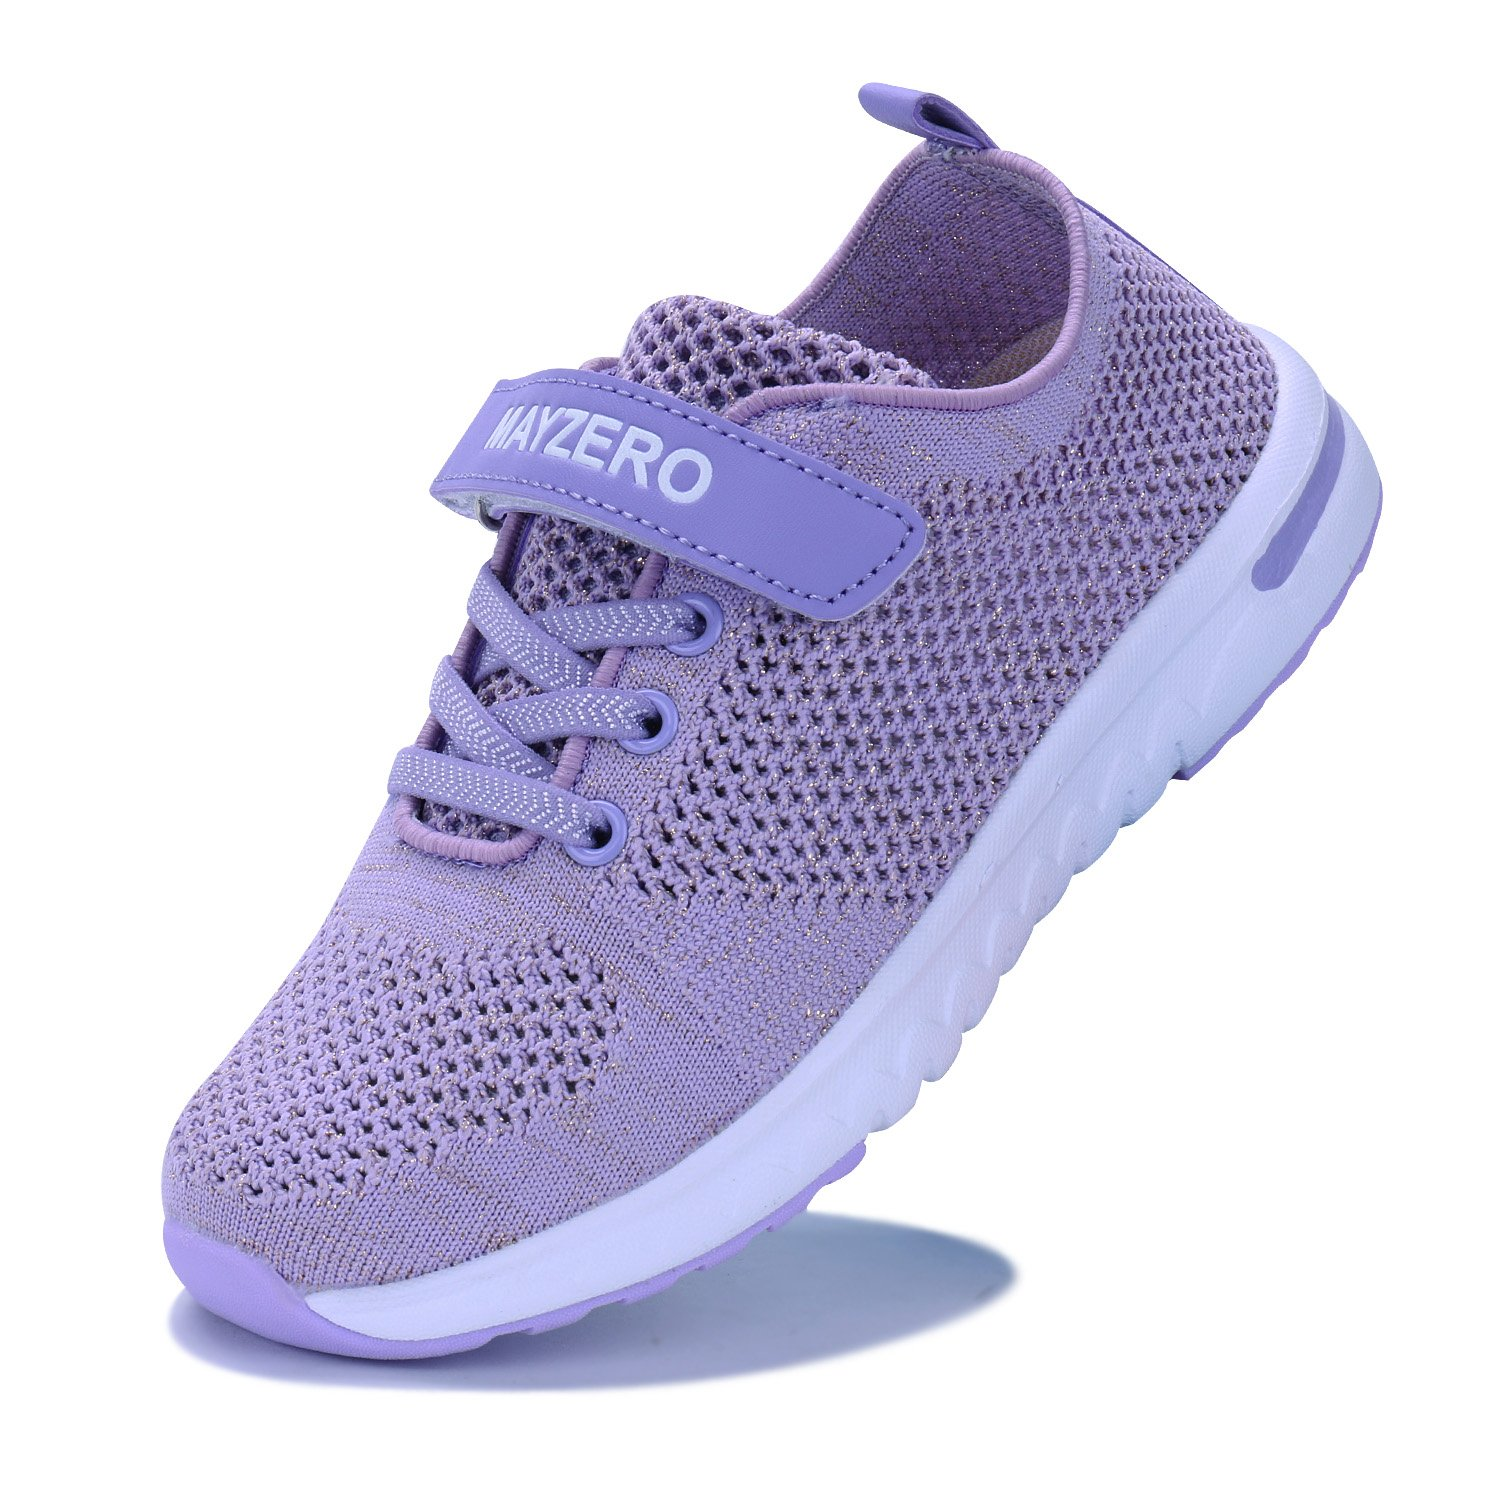 Little Kid//Big Kid Kids Running Tennis Shoes Lightweight Casual Walking Sneakers for Boys and Girls